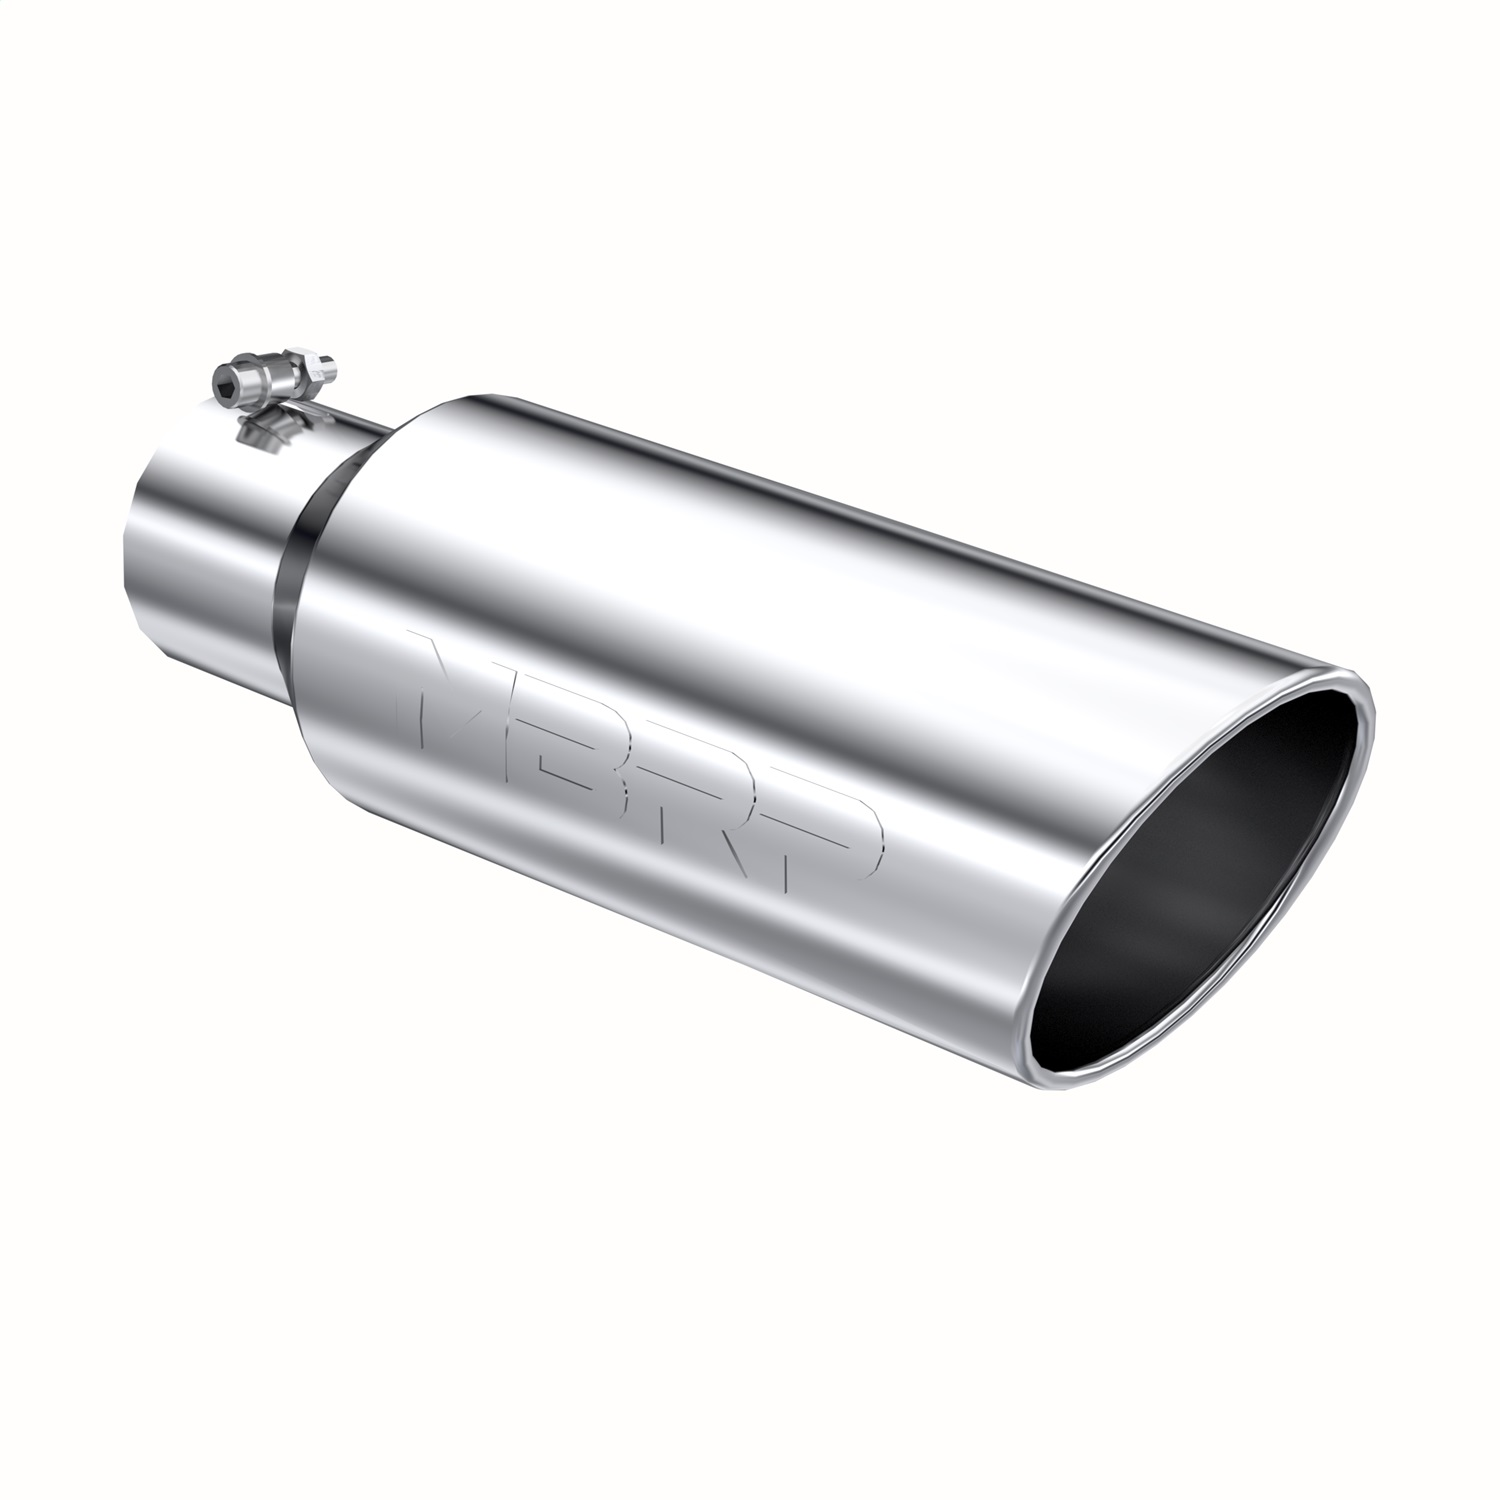 MBRP Exhaust Exhaust Tail Pipe Tip (T5130)